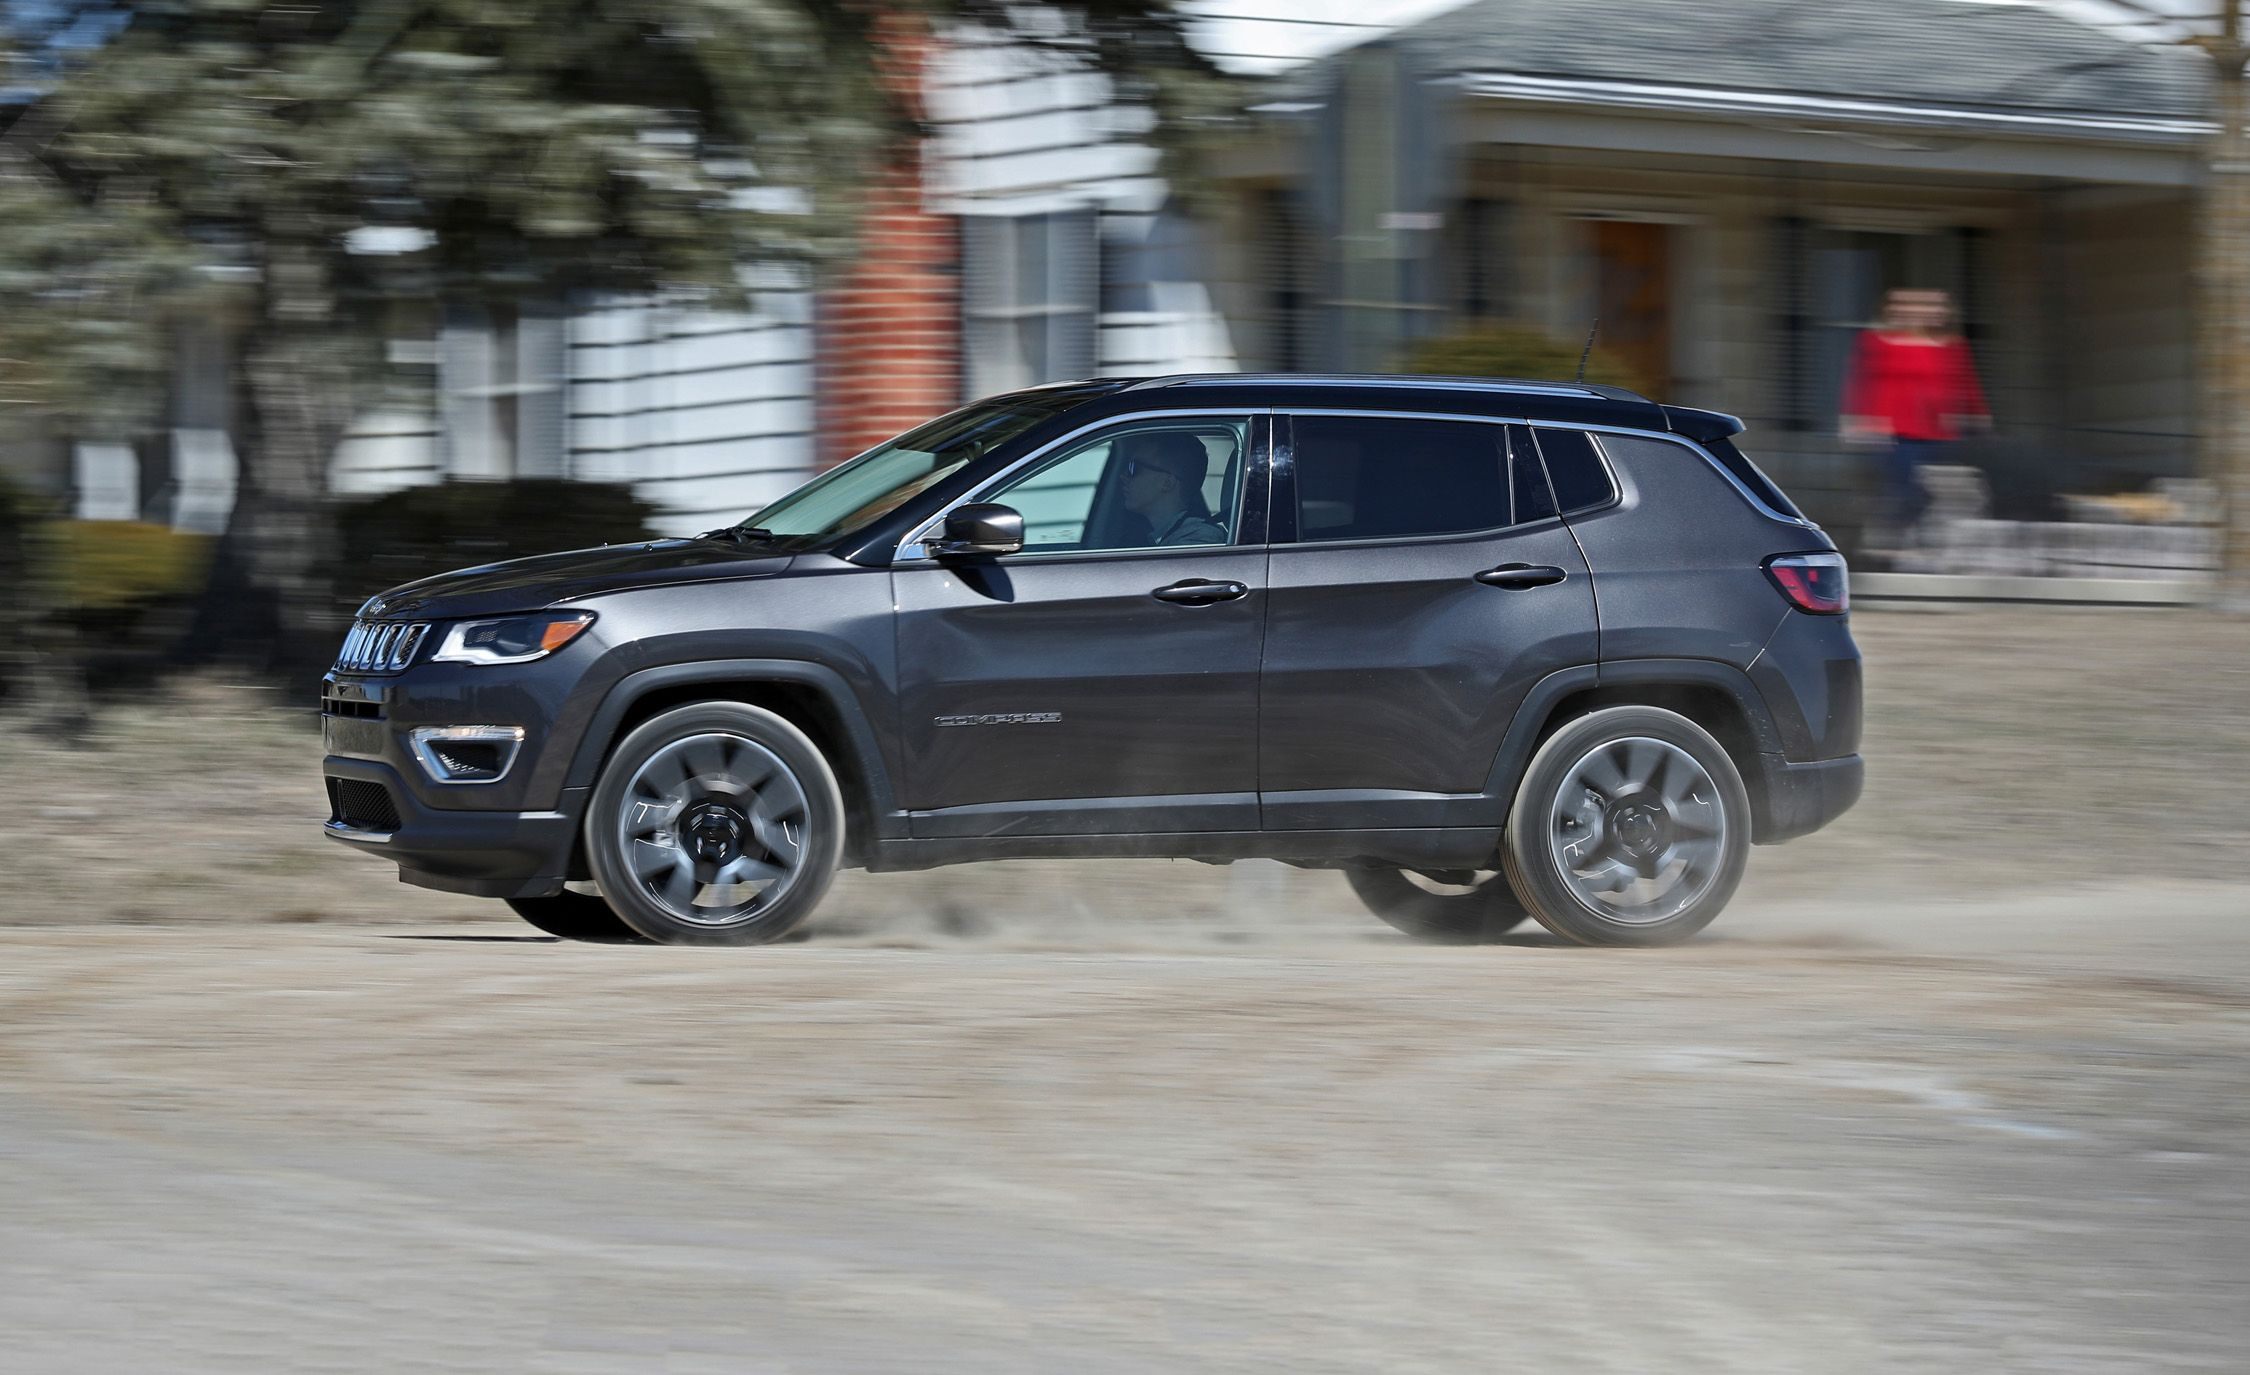 2018 Jeep Compass Fwd Automatic Tested Lost In The Urban Jungle